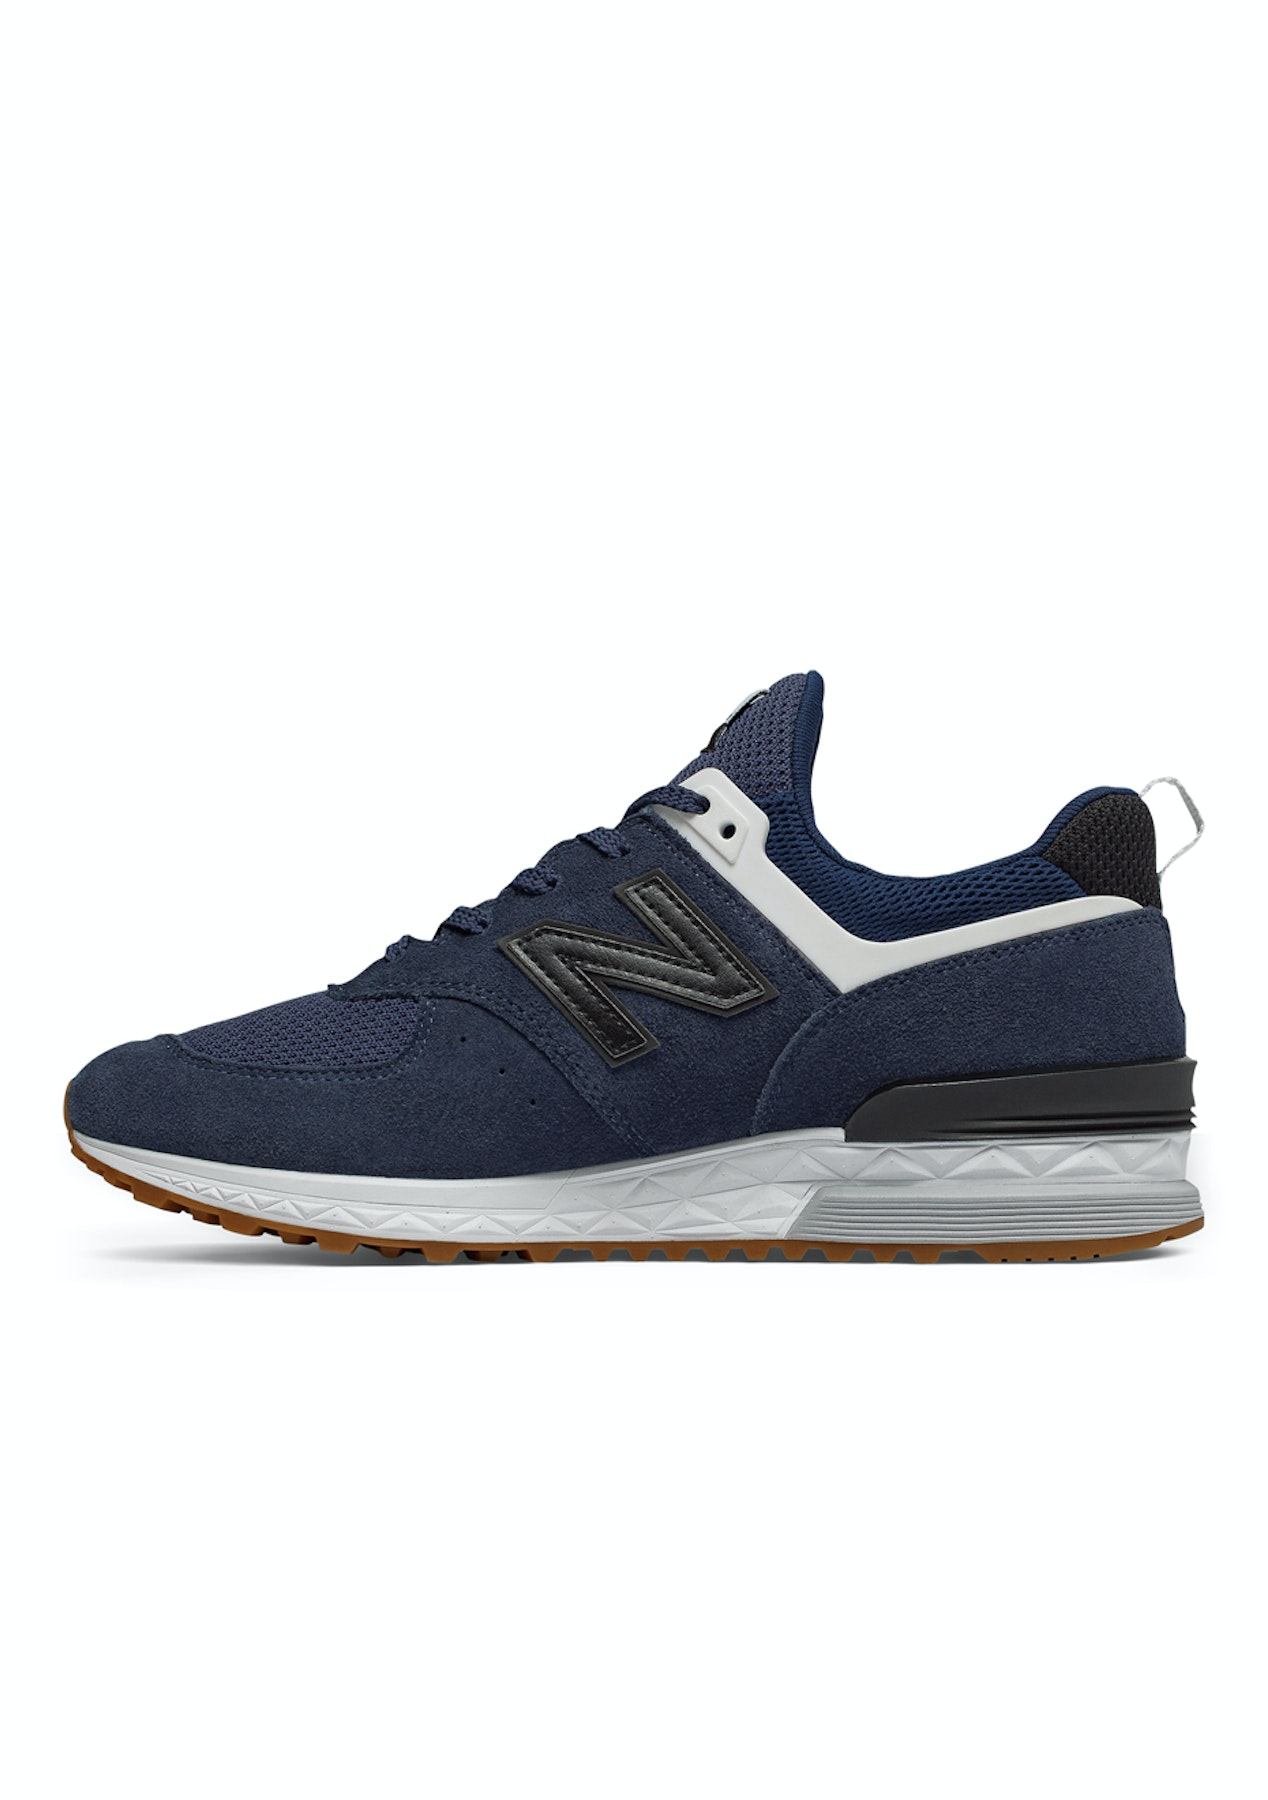 timeless design 43309 403d9 New Balance - Mens 574 Sport - Navy with Black